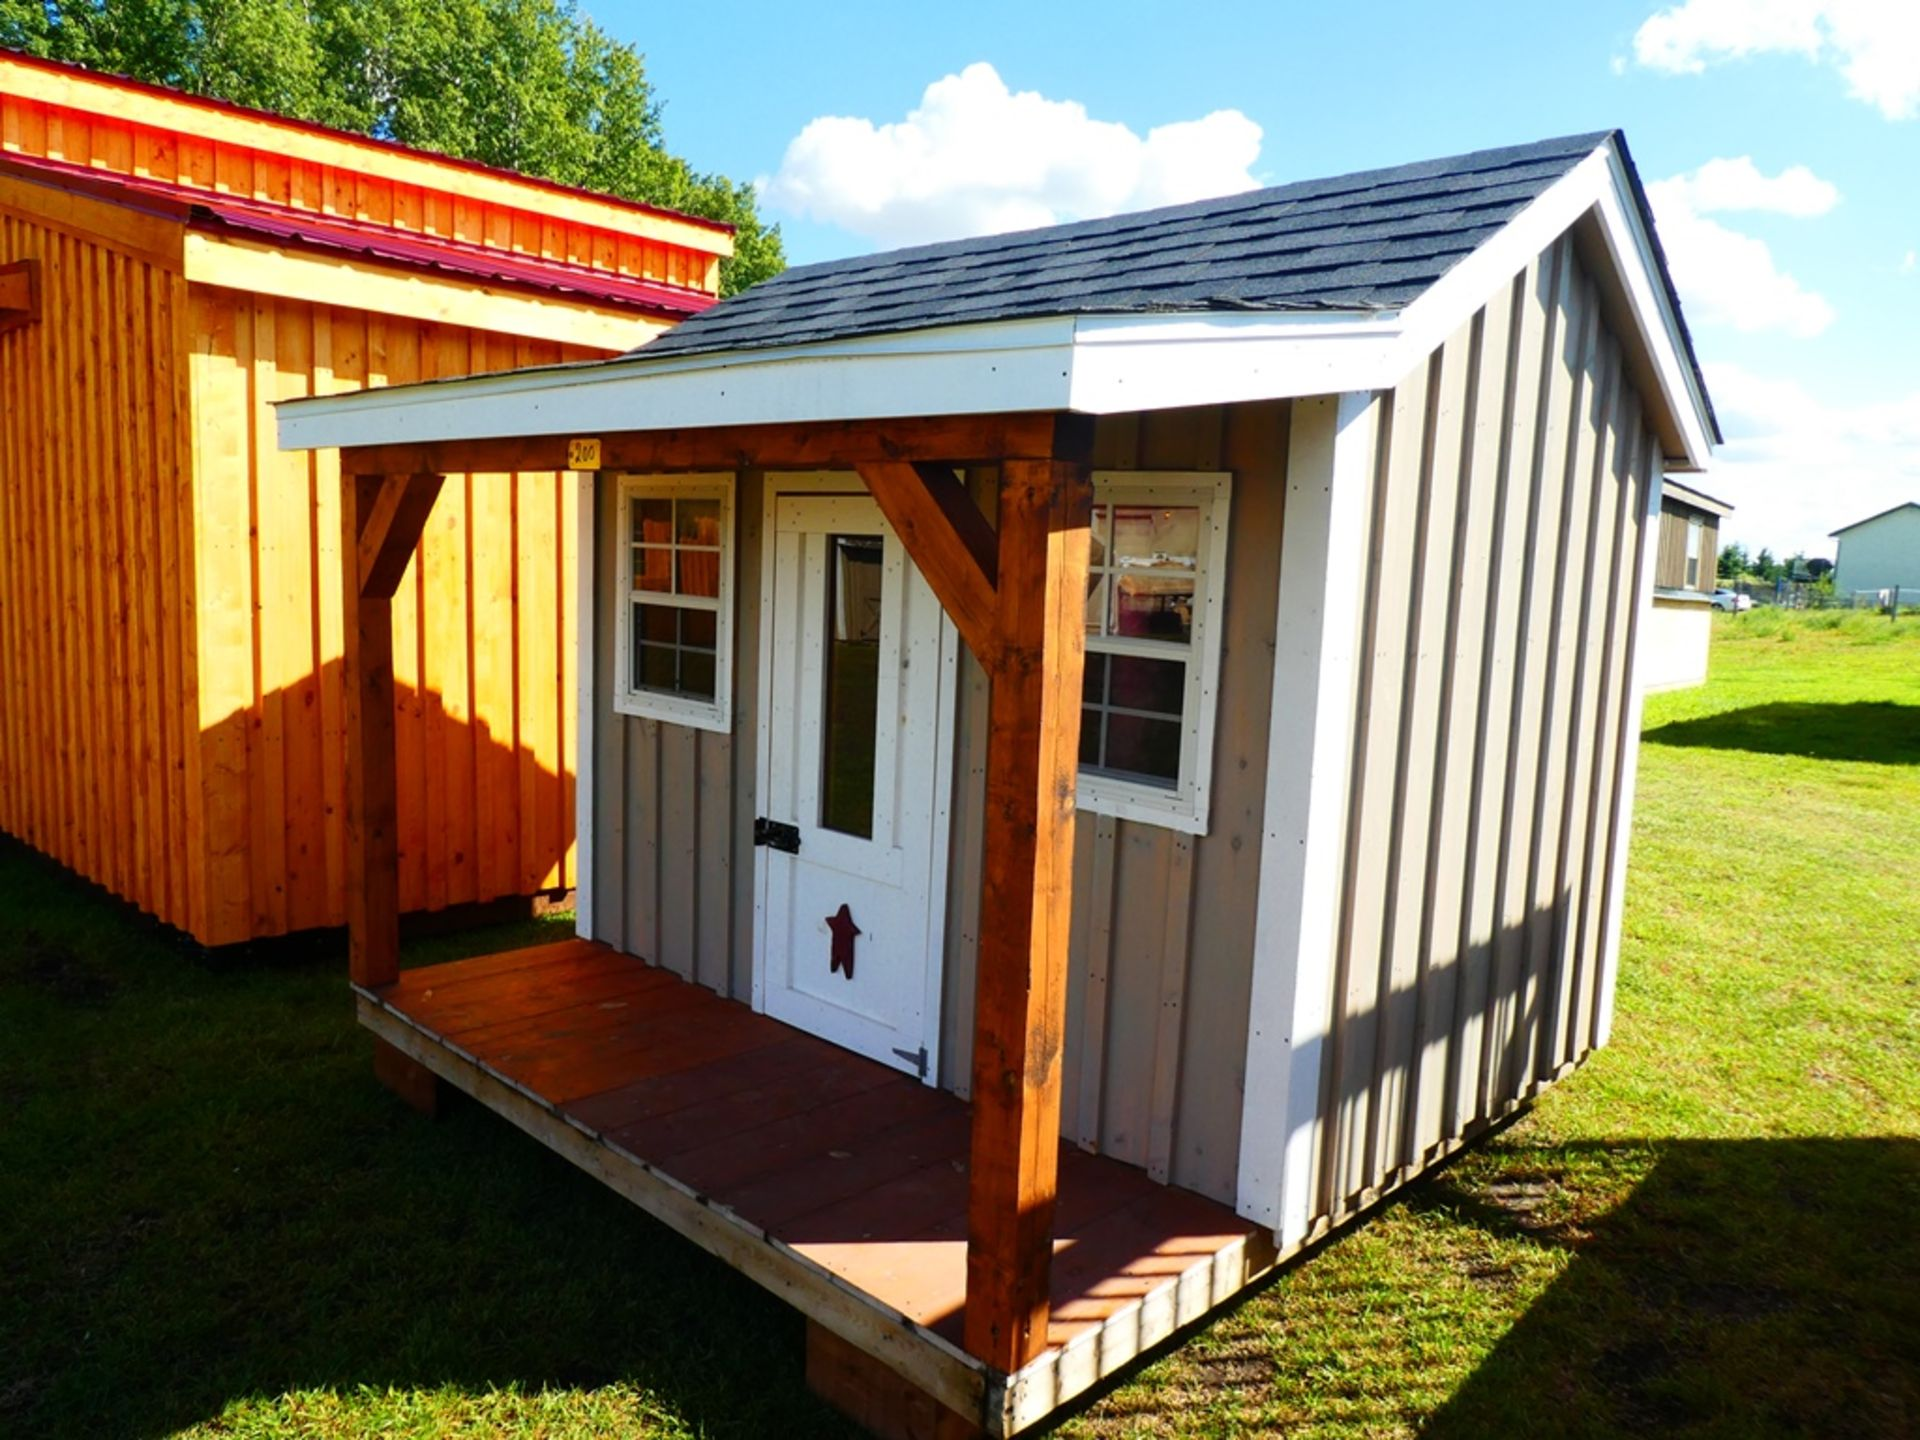 HAND CRAFTED 8'X8' PLAY HOUSE